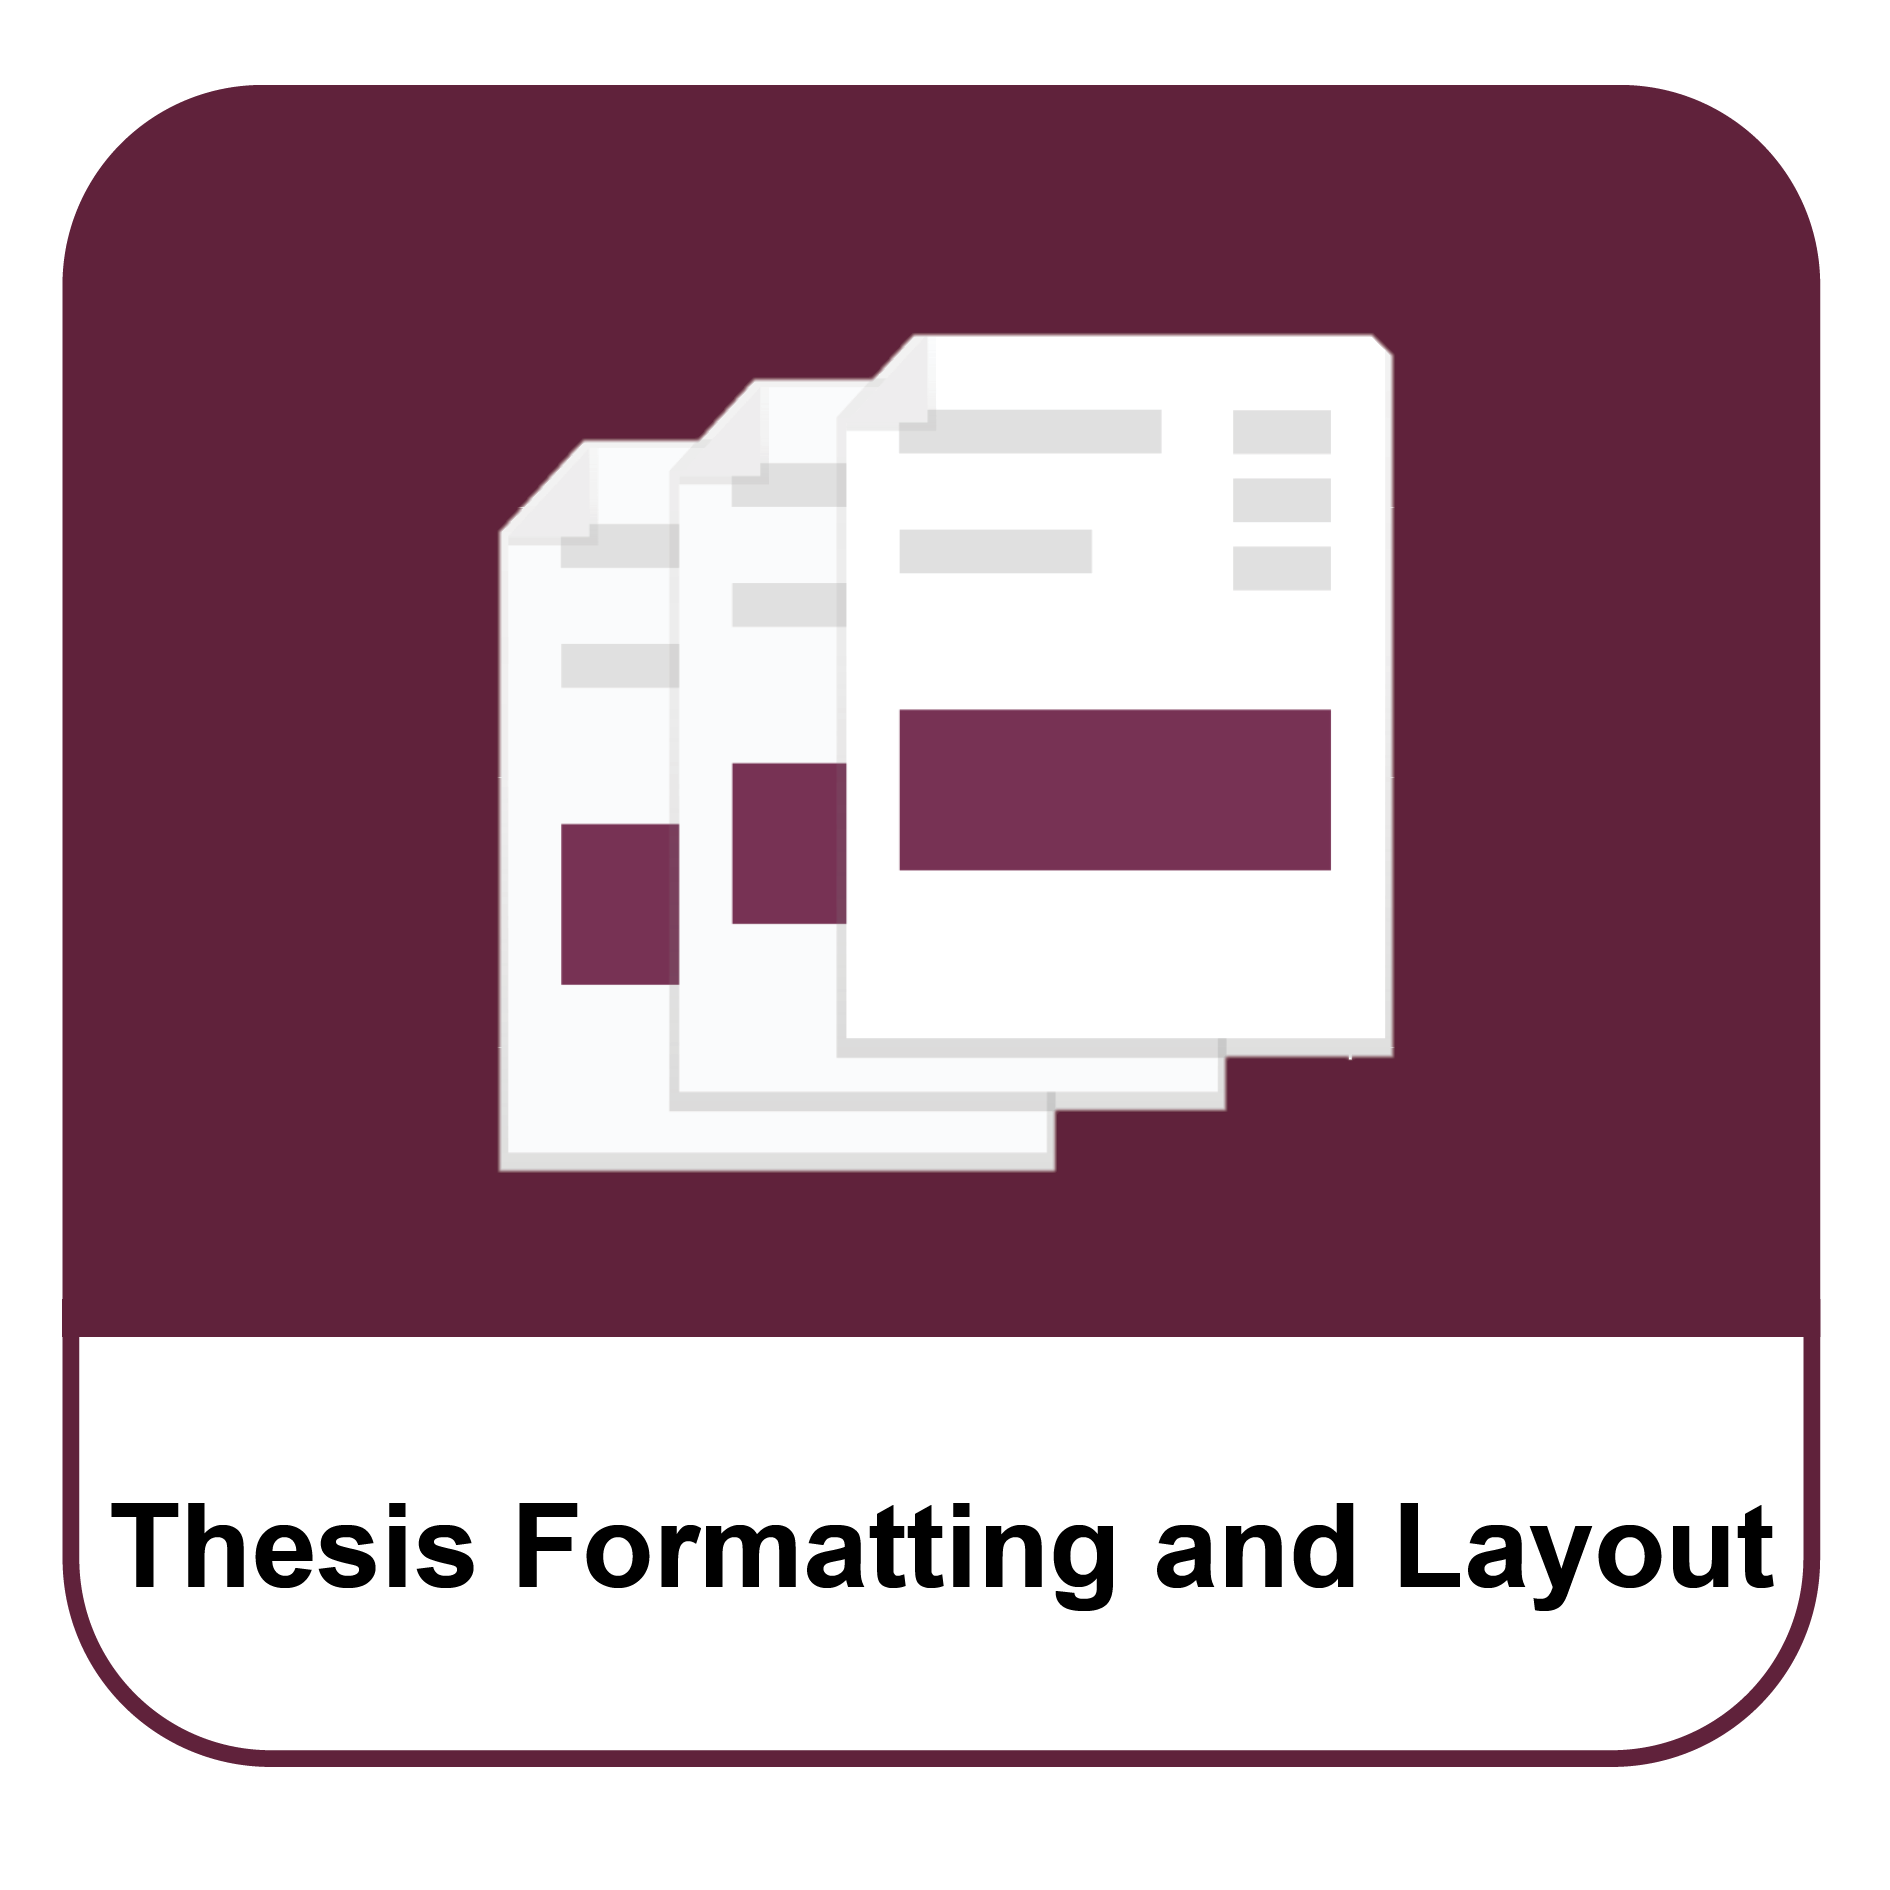 Thesis formatting and layout updated icon resources.png